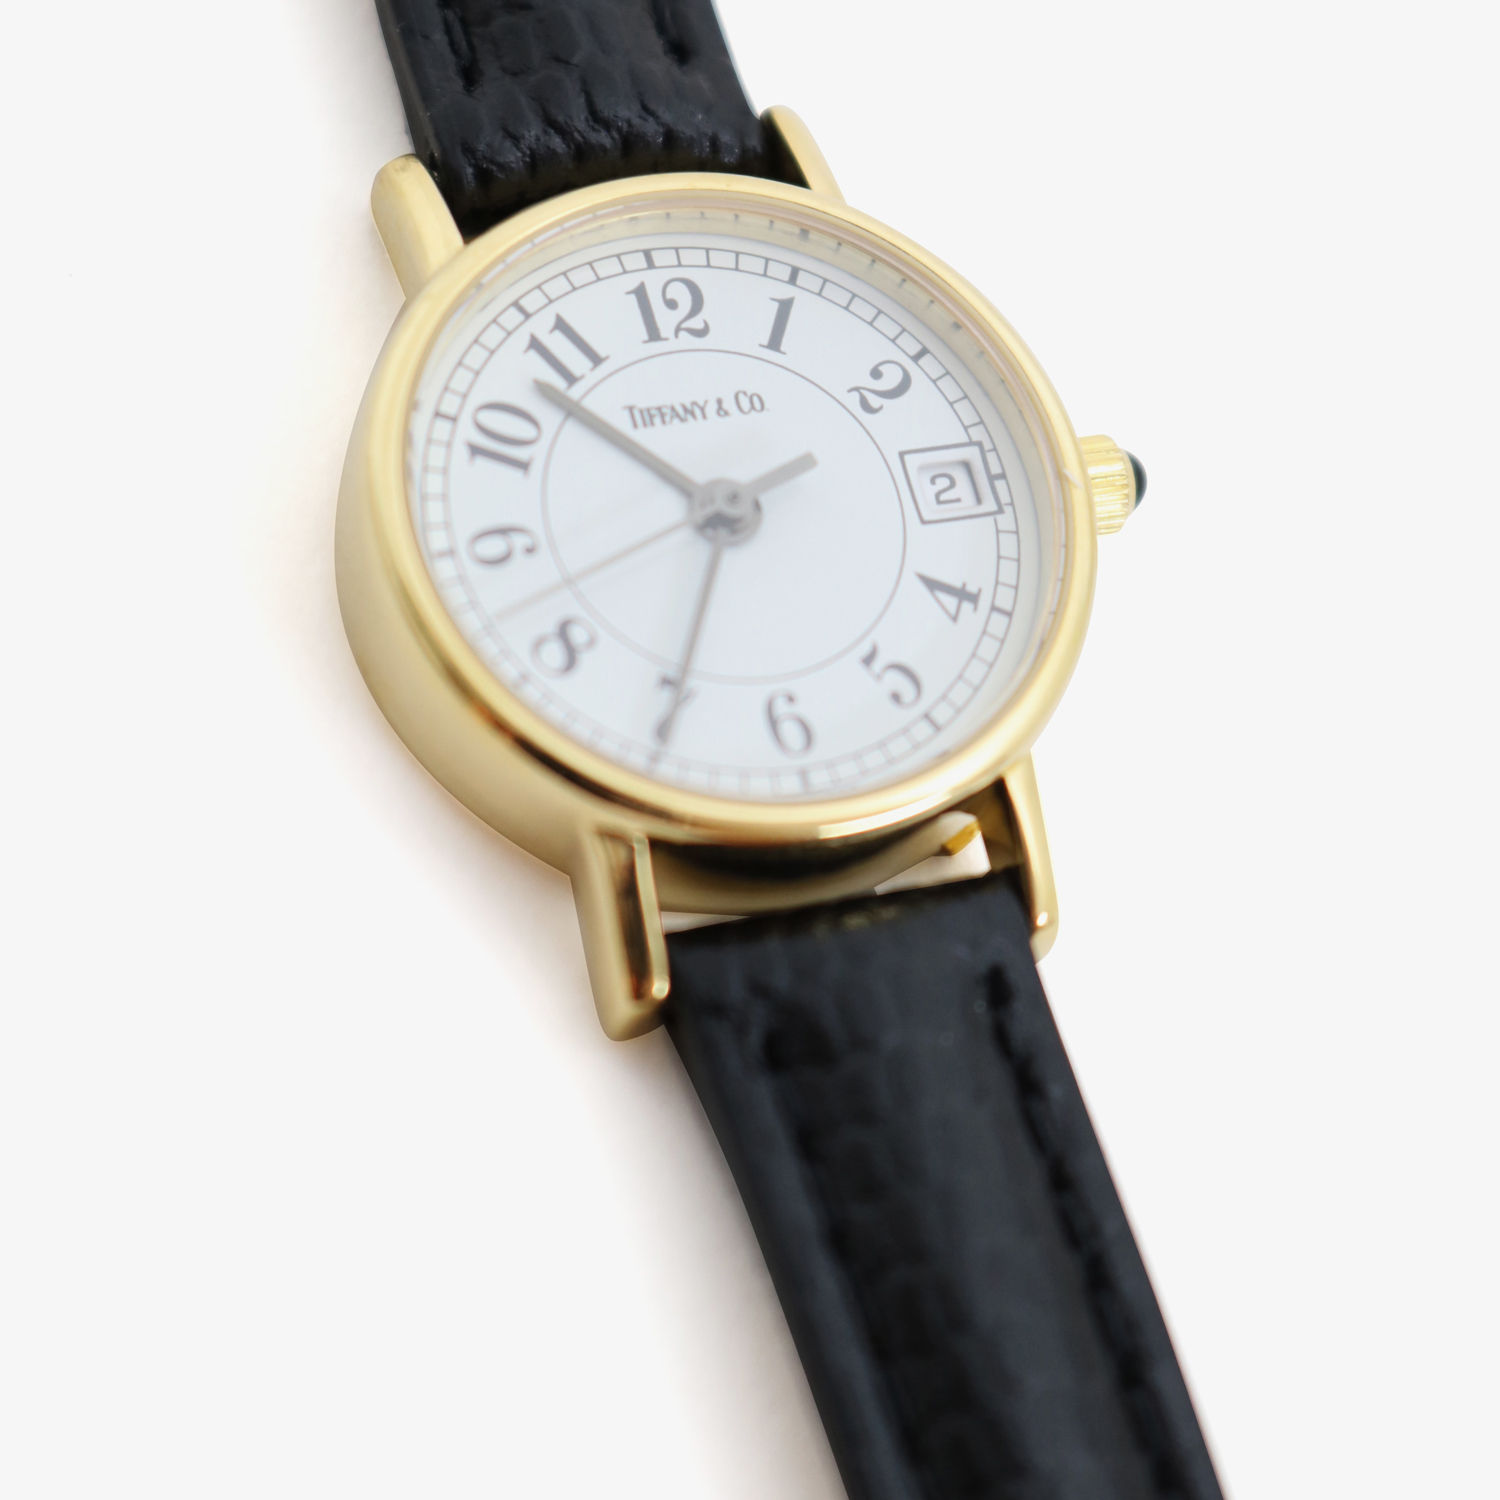 Tiffany & Co. |K14YG ROUND - 90'S|OTHER VINTAGE WATCH